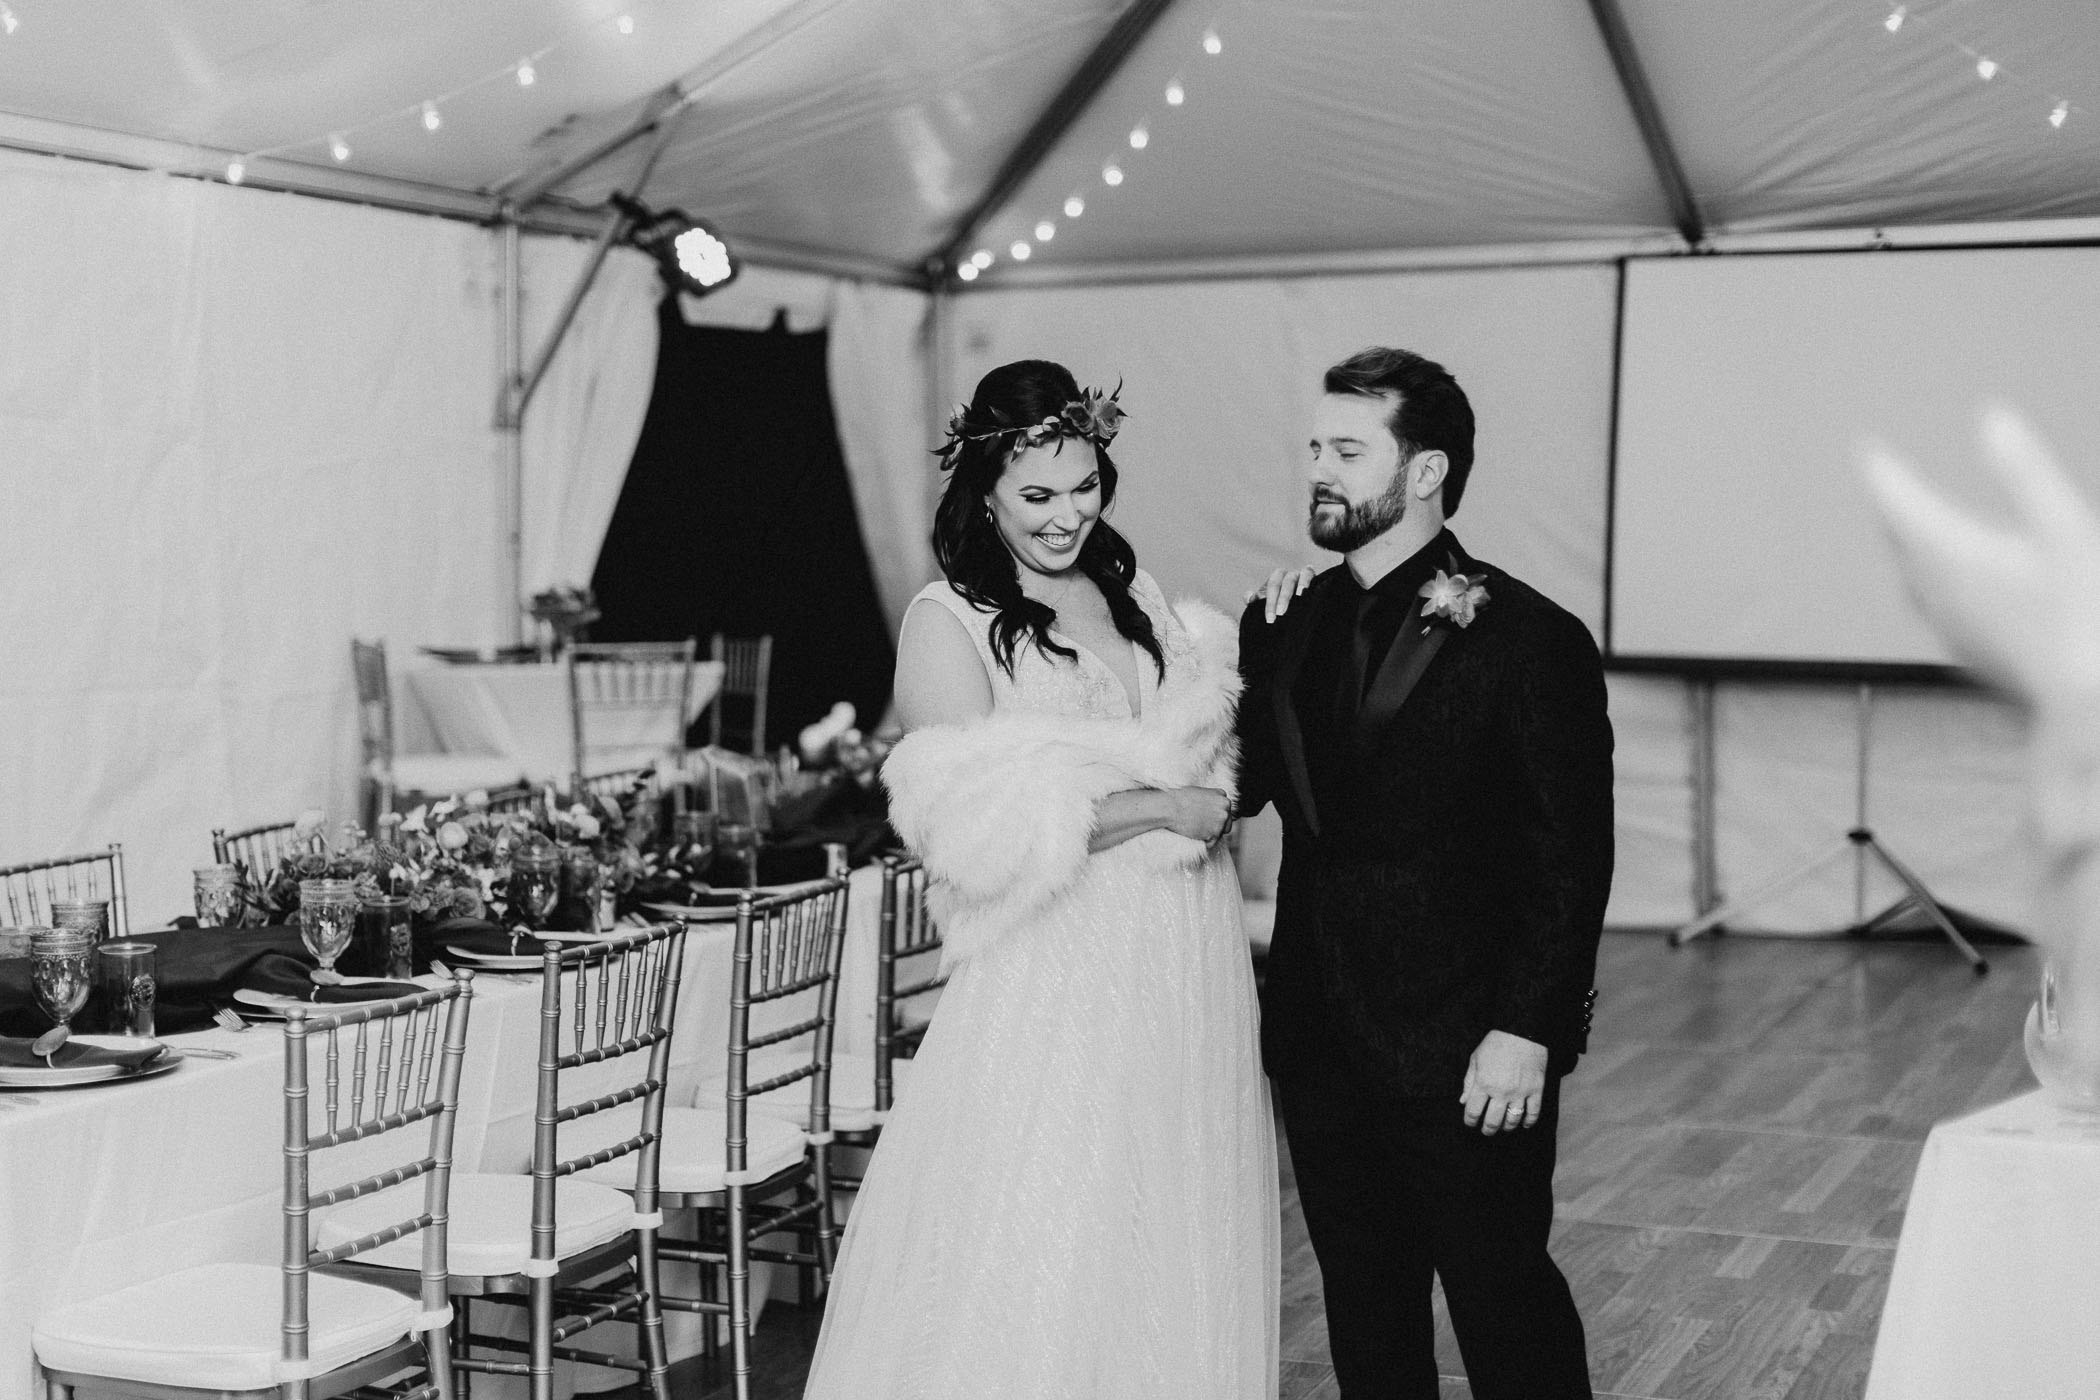 Black and white photo of couple at wedding reception